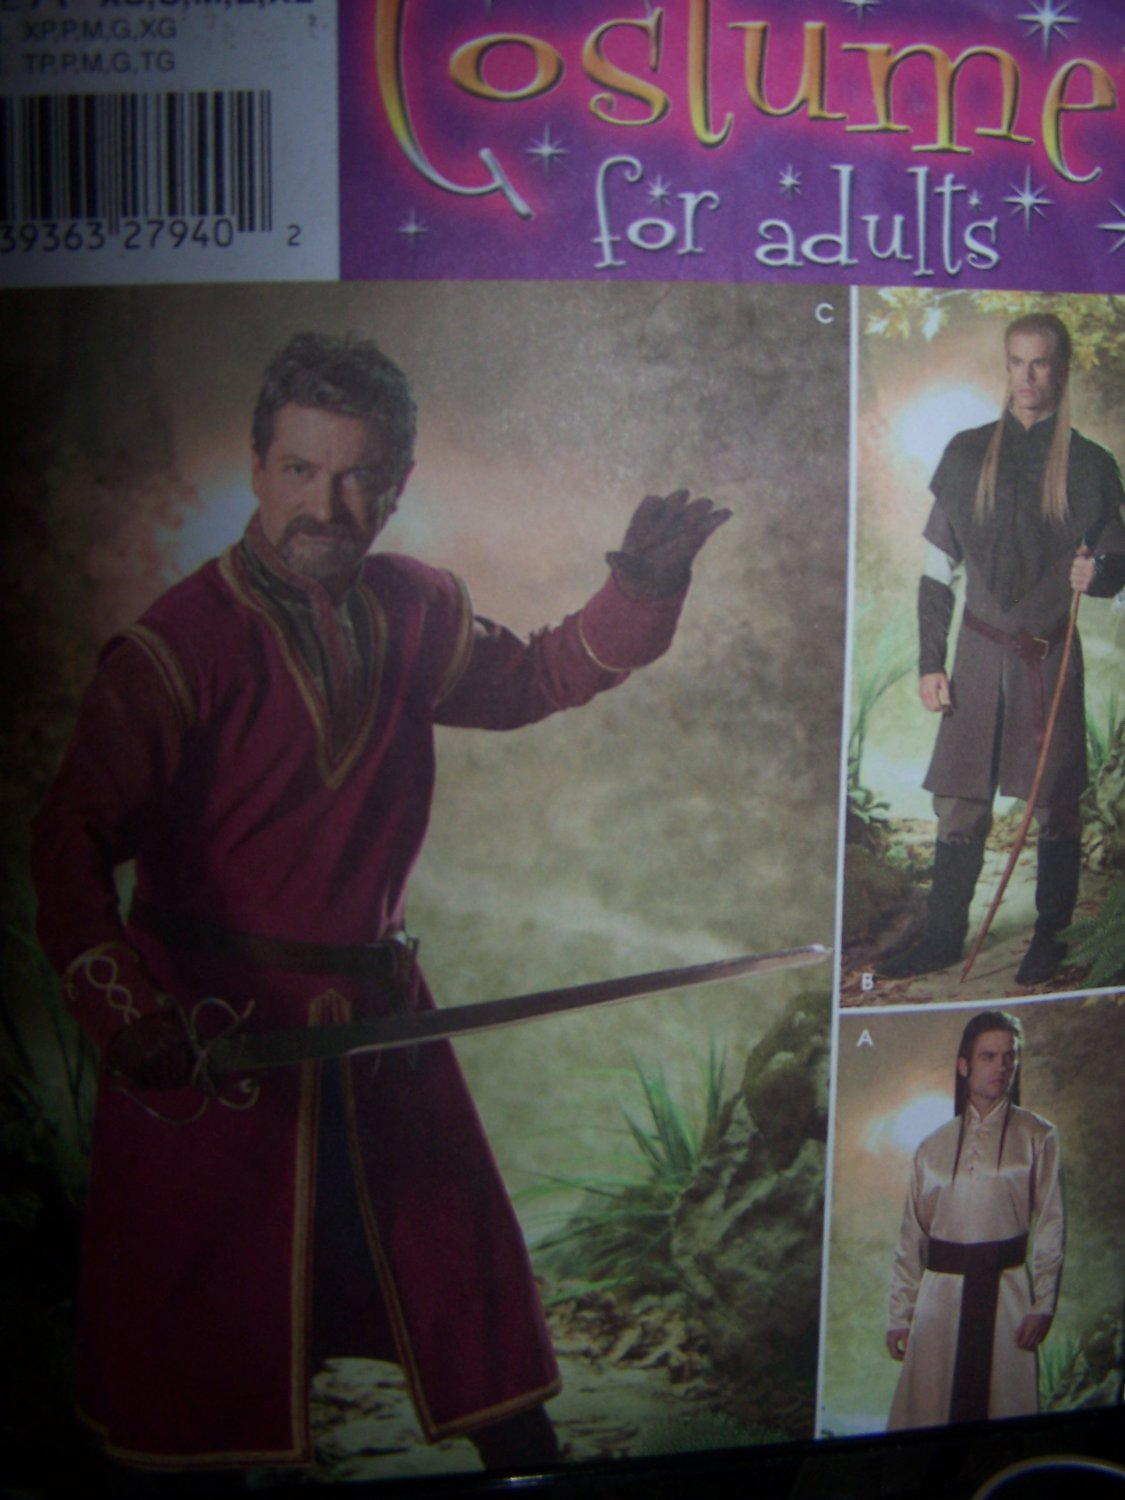 Lord of the Rings Costume Sewing Pattern Simplicity 4942 Adult XSm-XL